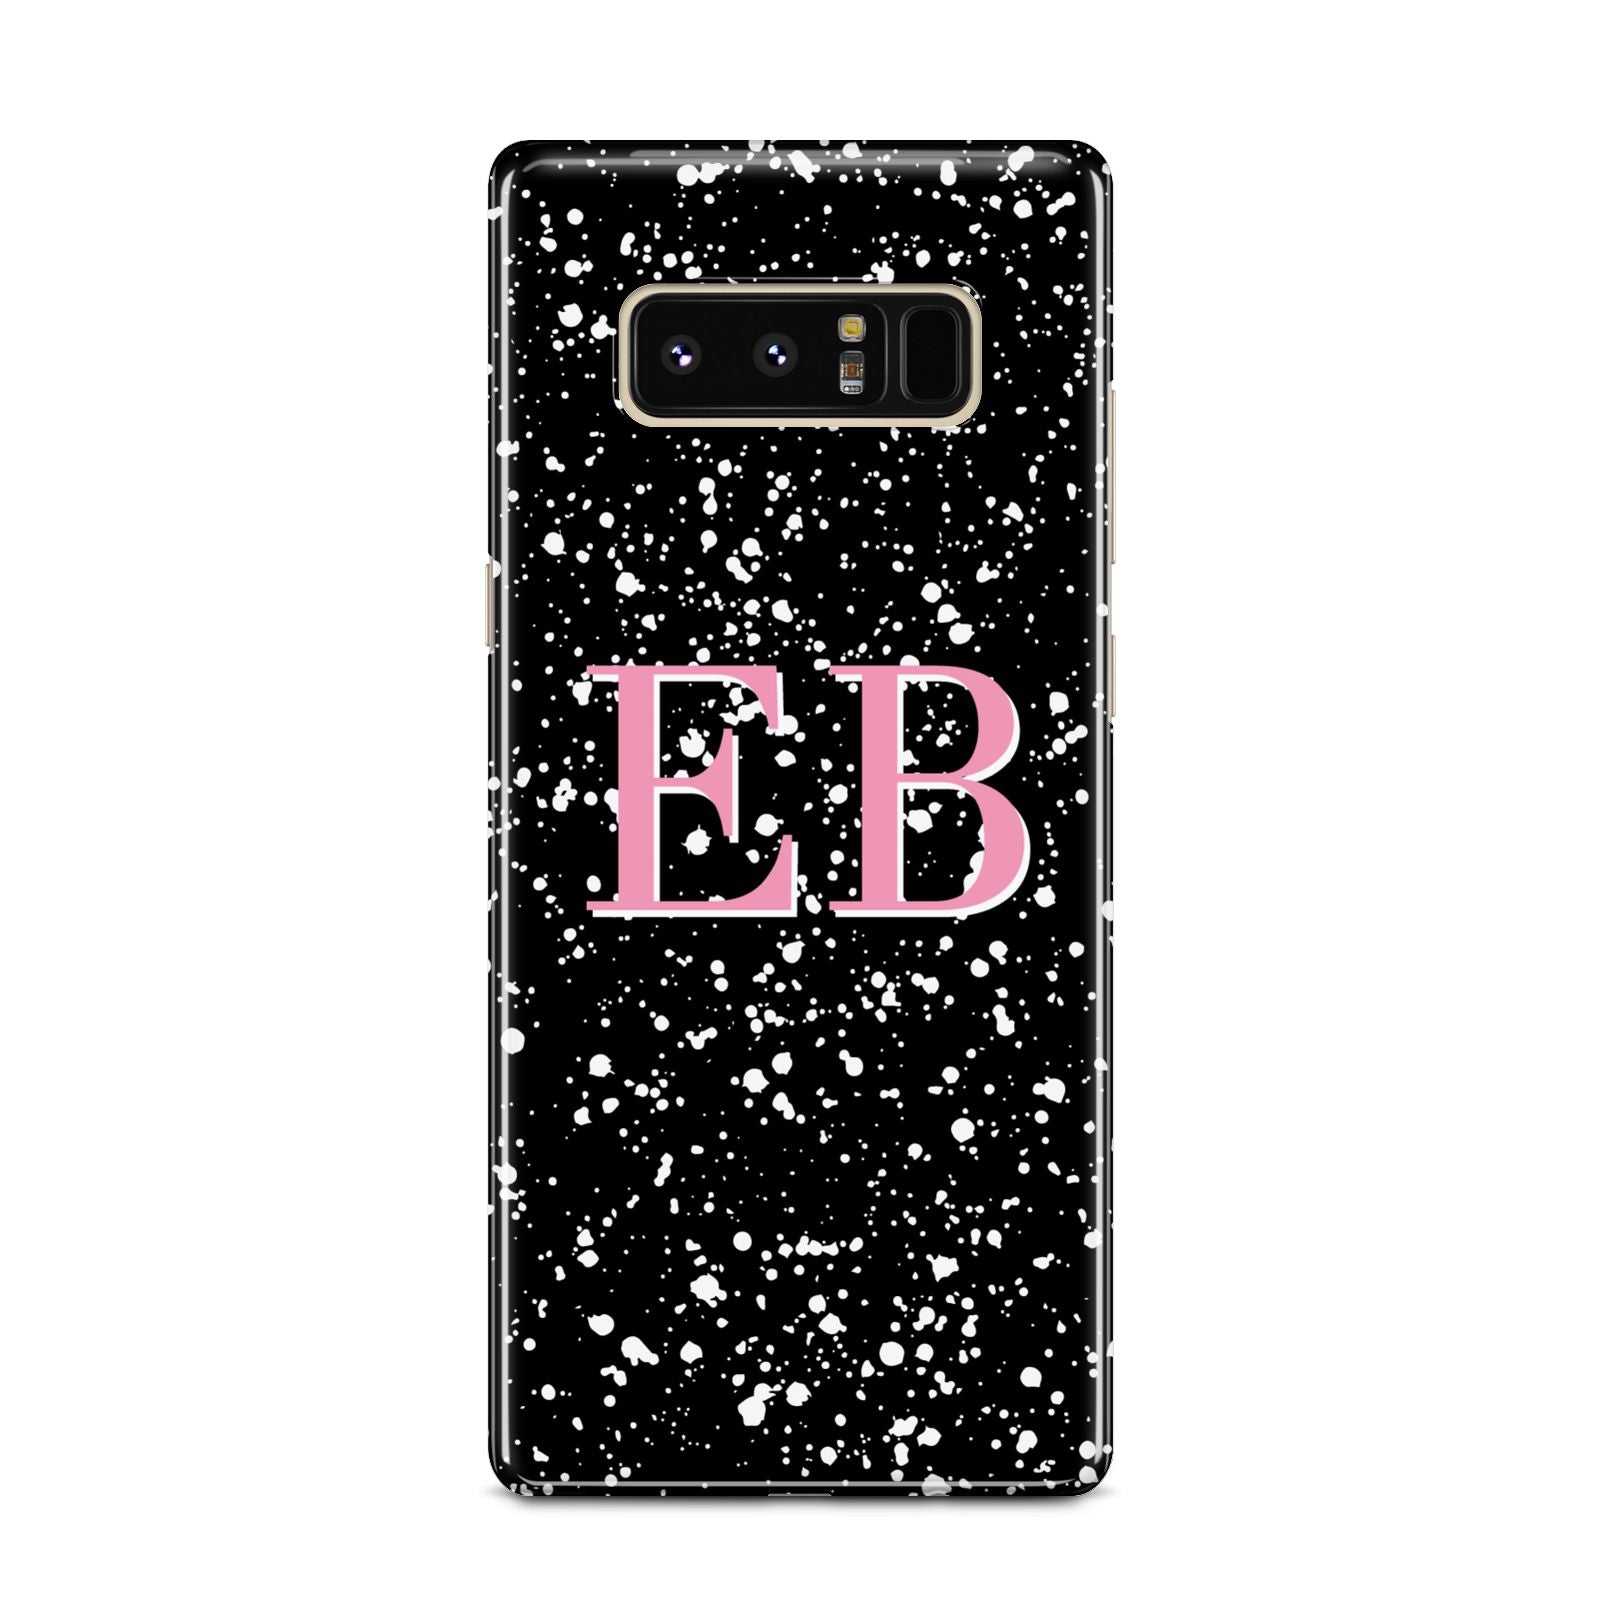 Personalised Black Ink Splat Initials Samsung Galaxy Note 8 Case